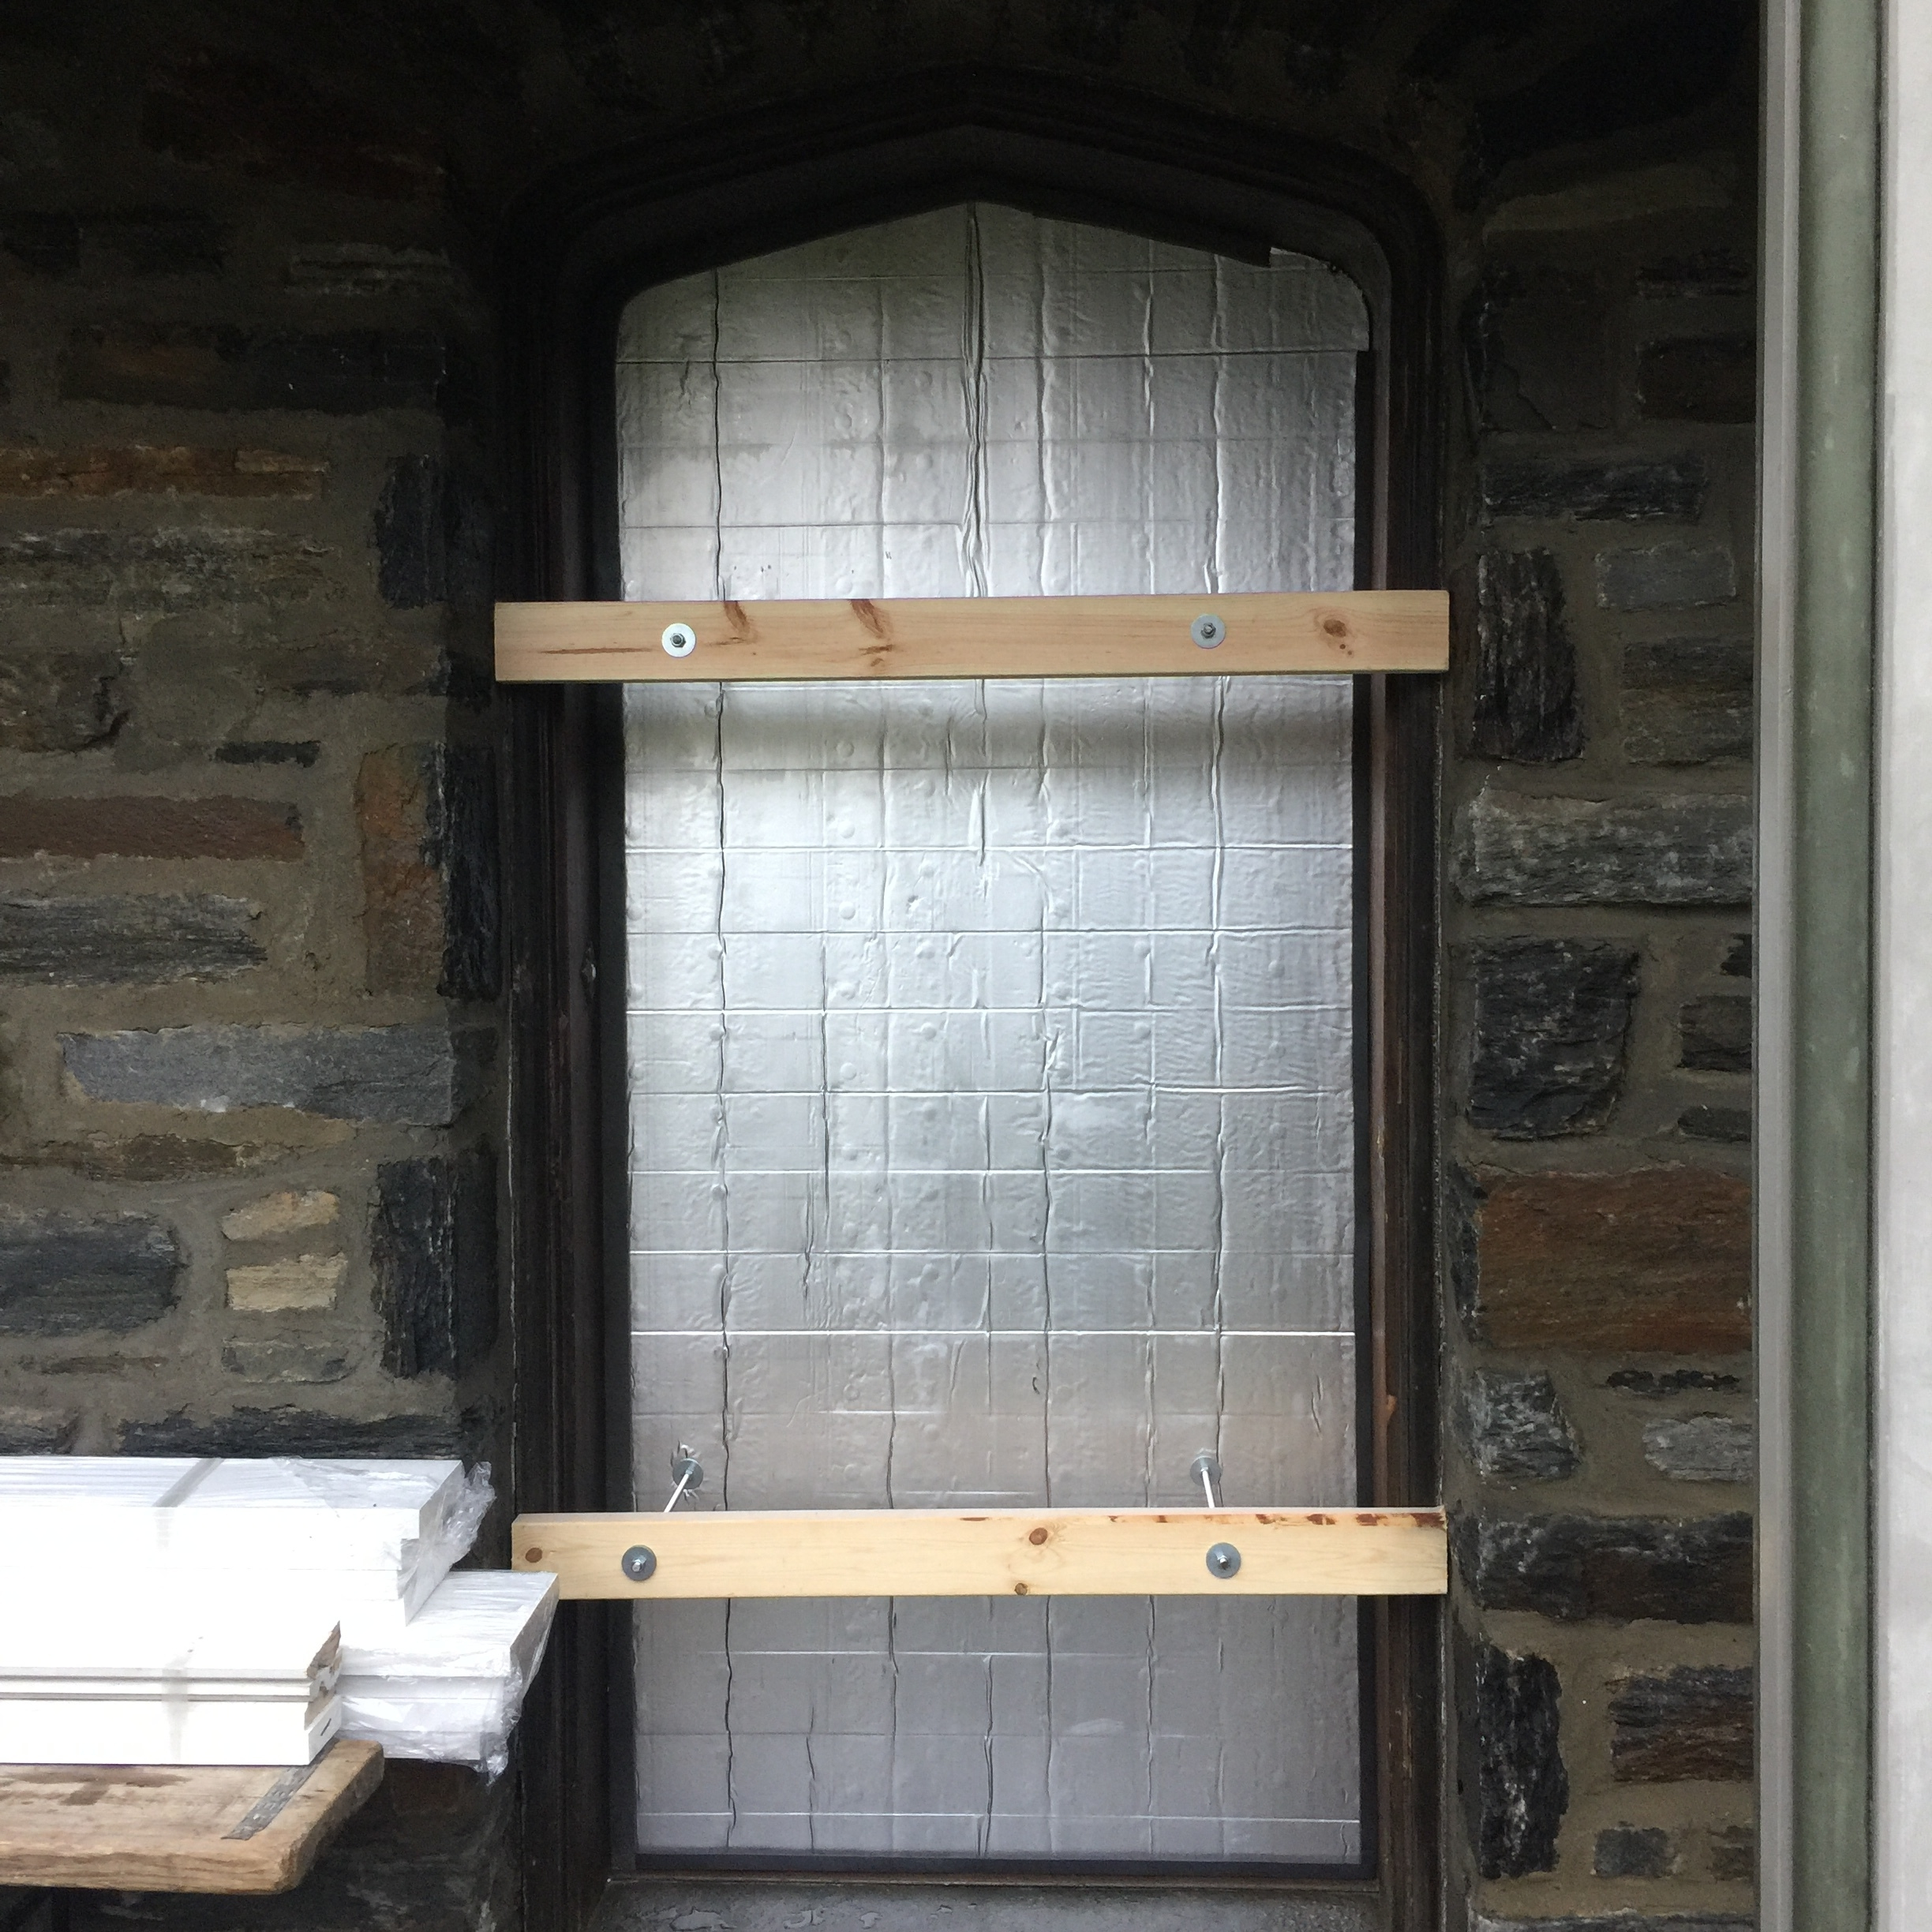 We've found that clients are hesitant to restore historic front doors because there is no way to insulate or protect the interior from heat loss or intruders. So, we designed a proprietary system that solves both concerns, as well as allows clients to escape, in case of a fire.